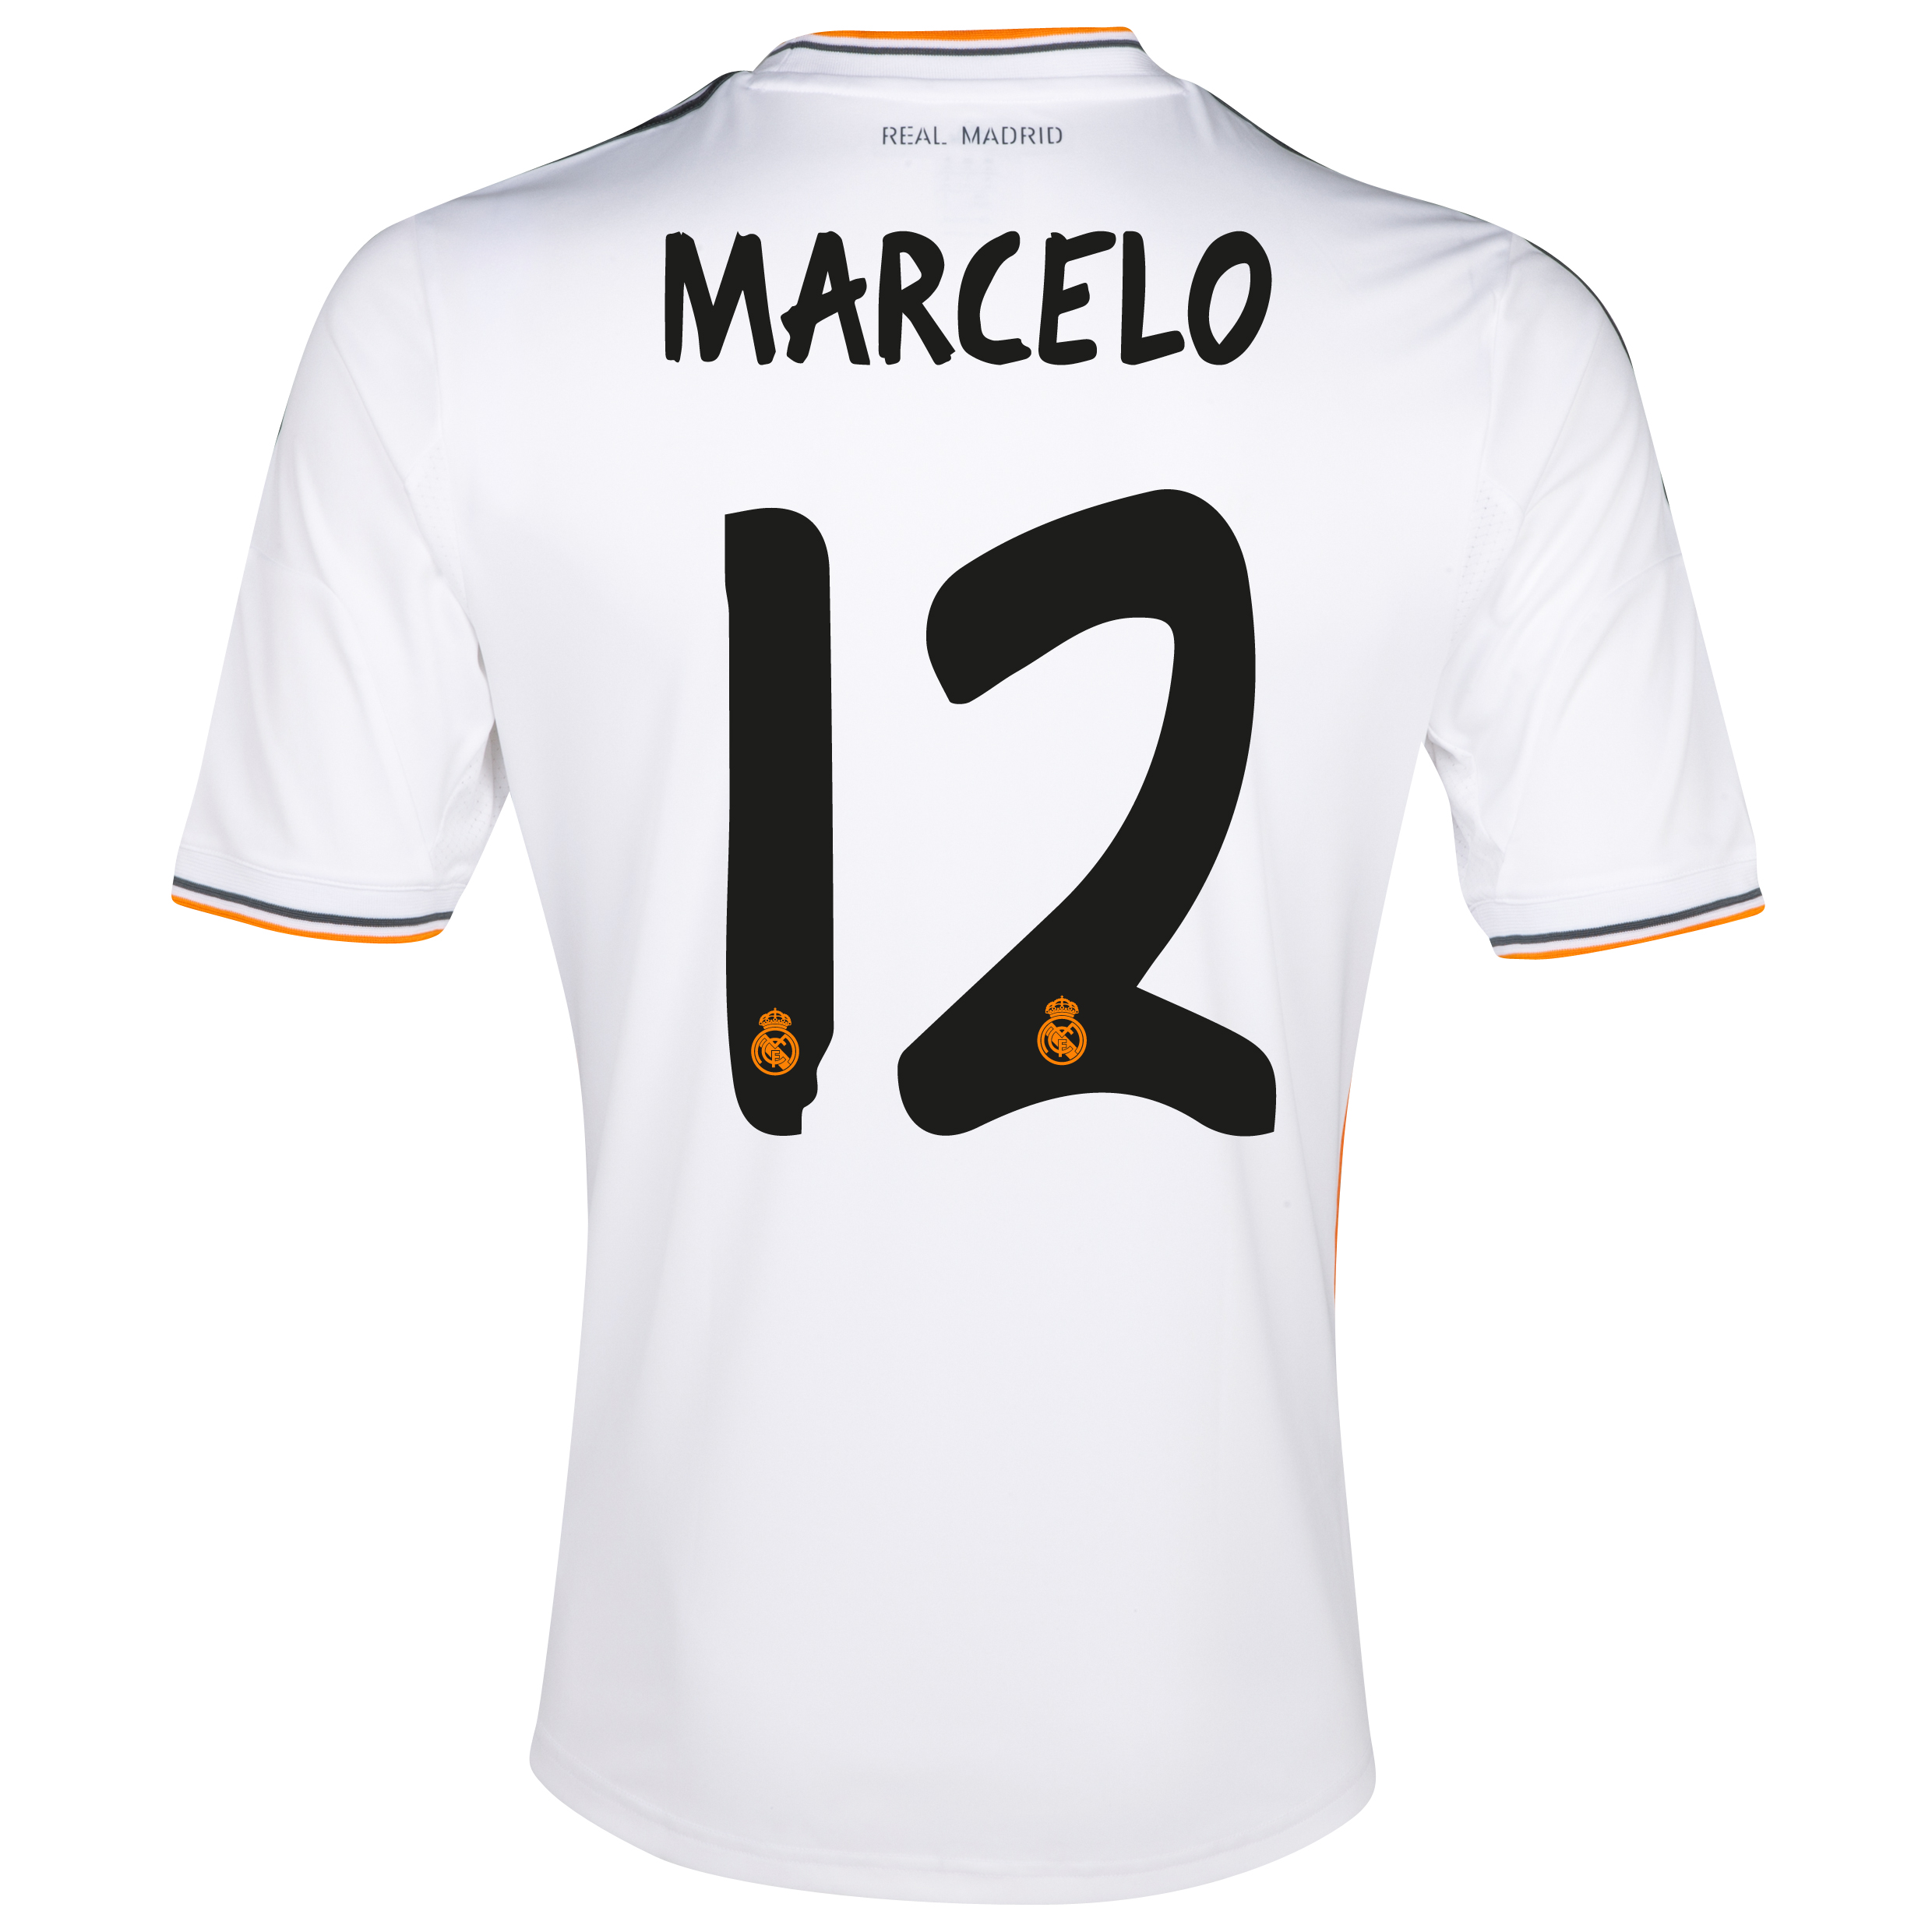 Real Madrid Home Shirt 2013/14 with Marcelo 12 printing